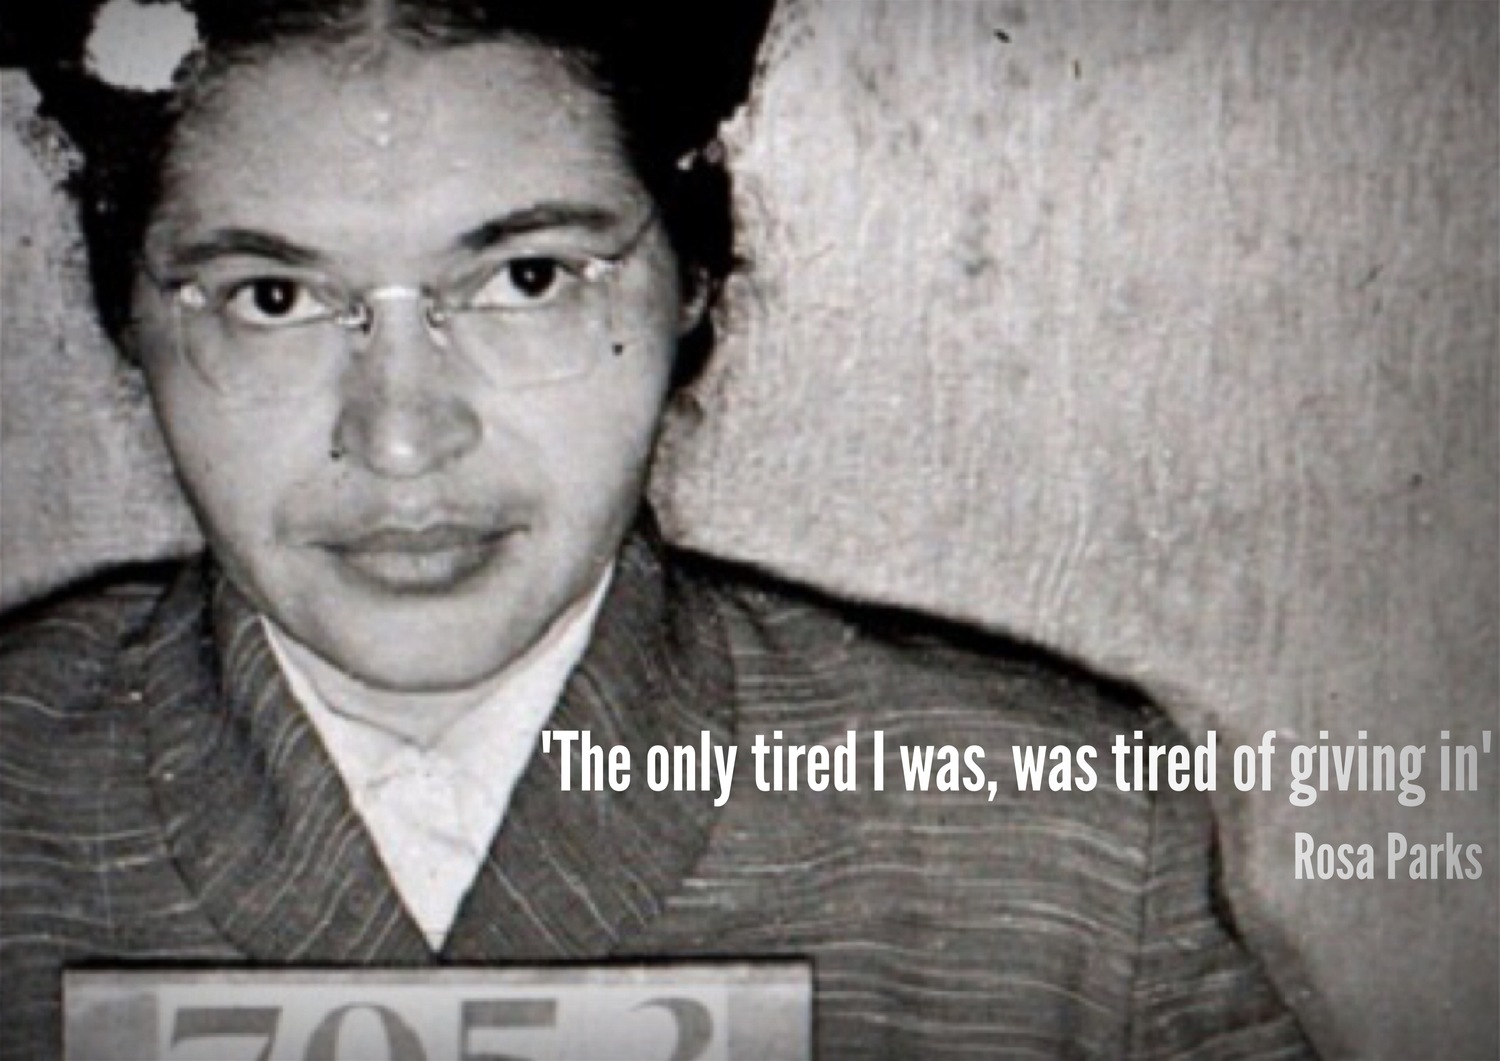 Today's Birthday: Rosa Parks - Civil Rights Leader